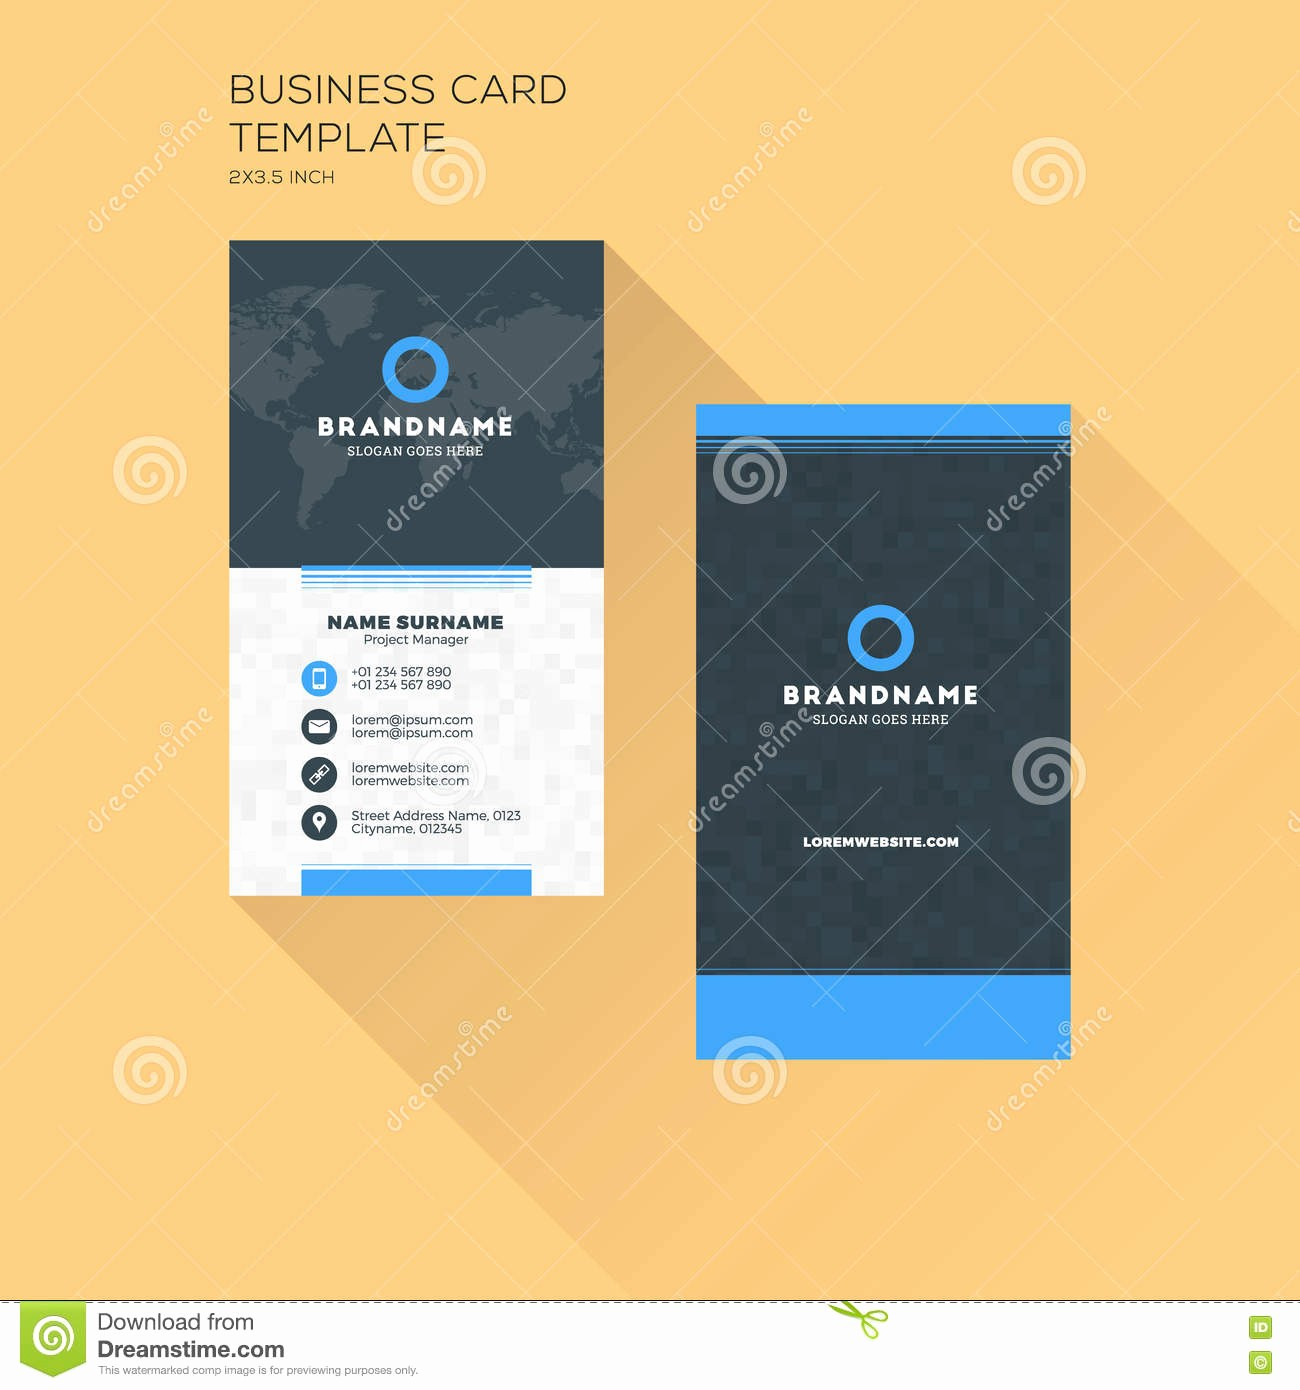 Business Card with Picture Template Inspirational Vertical Business Card Print Template Personal Business